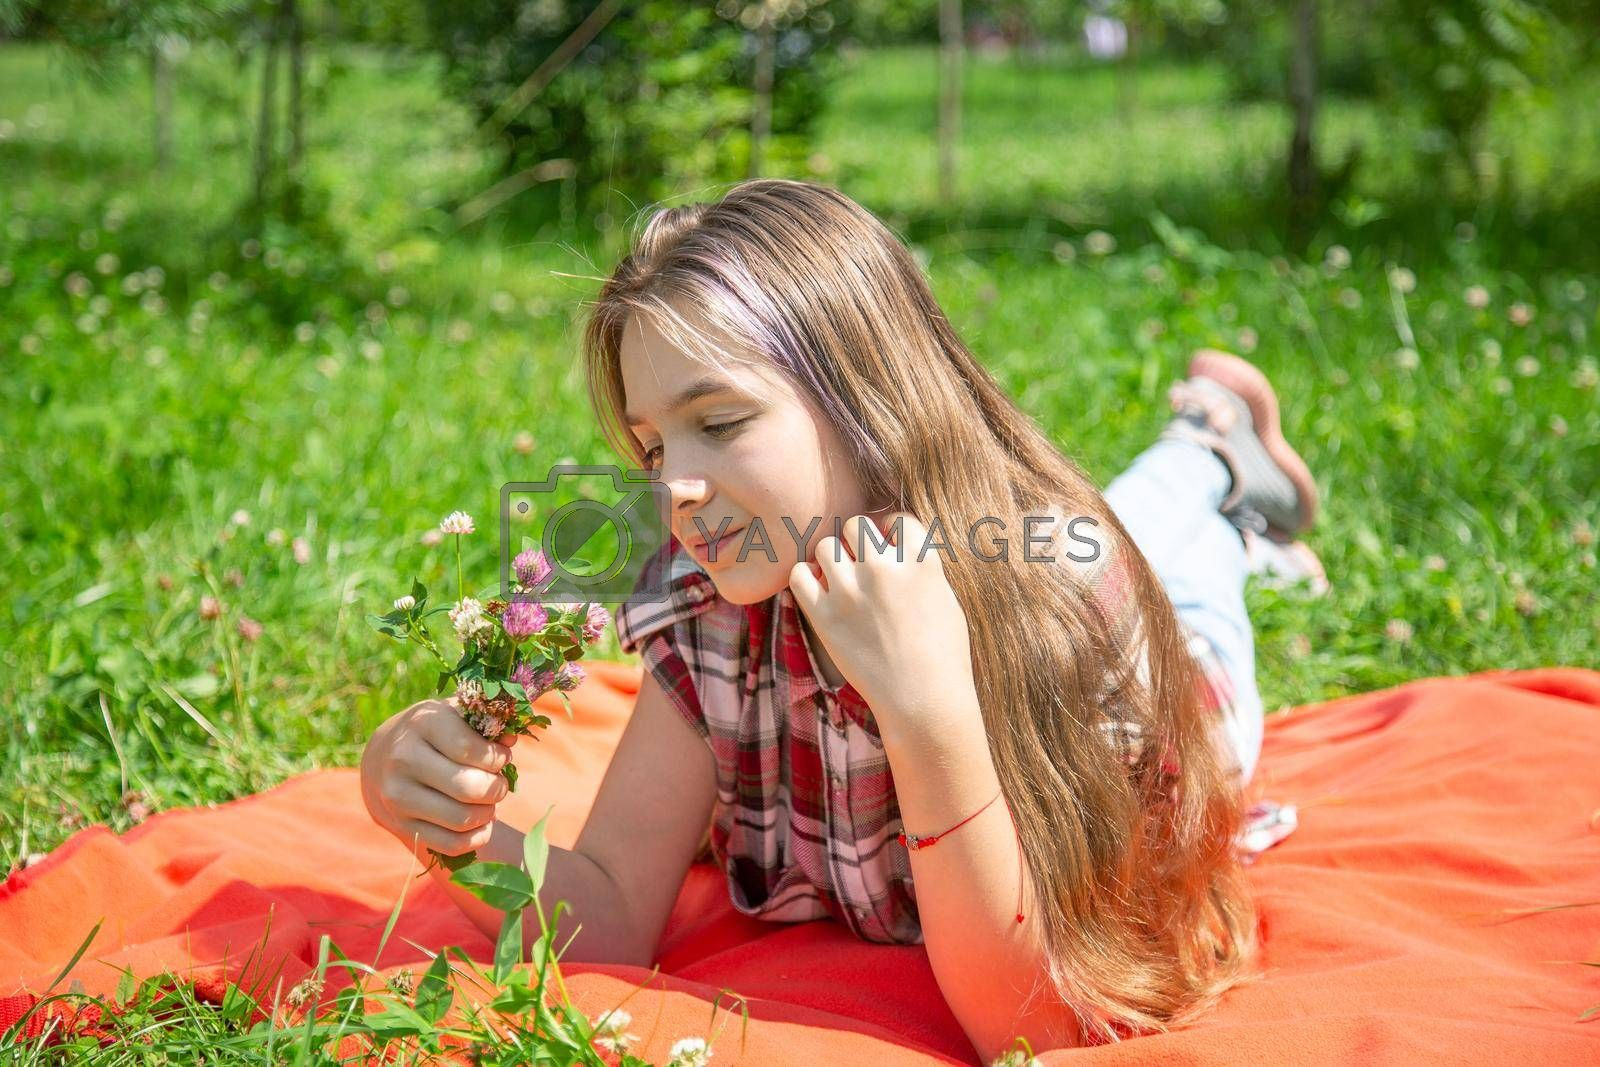 A young girl of 15 years old enjoys a bouquet of wild flowers lying on the lawn by galinasharapova